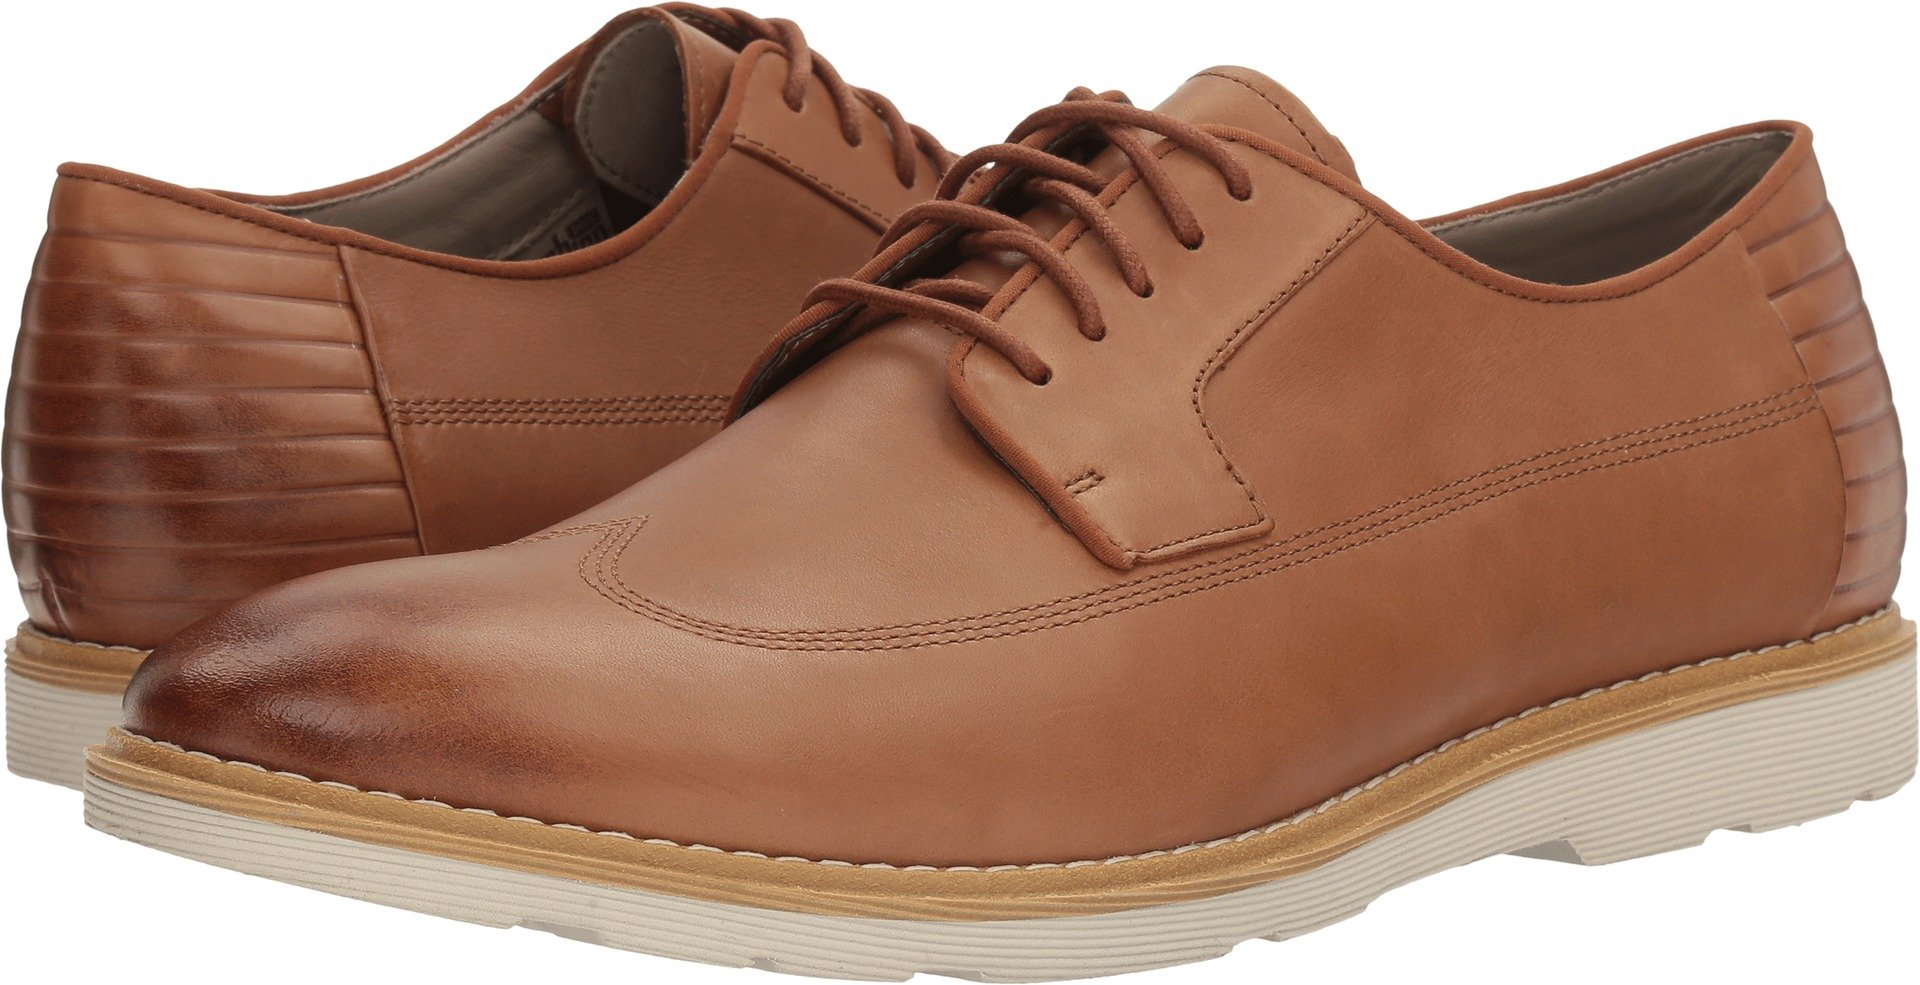 Clarks Men's Gambeson Style Wing Tip Oxford,Tan Leather,US 11 M